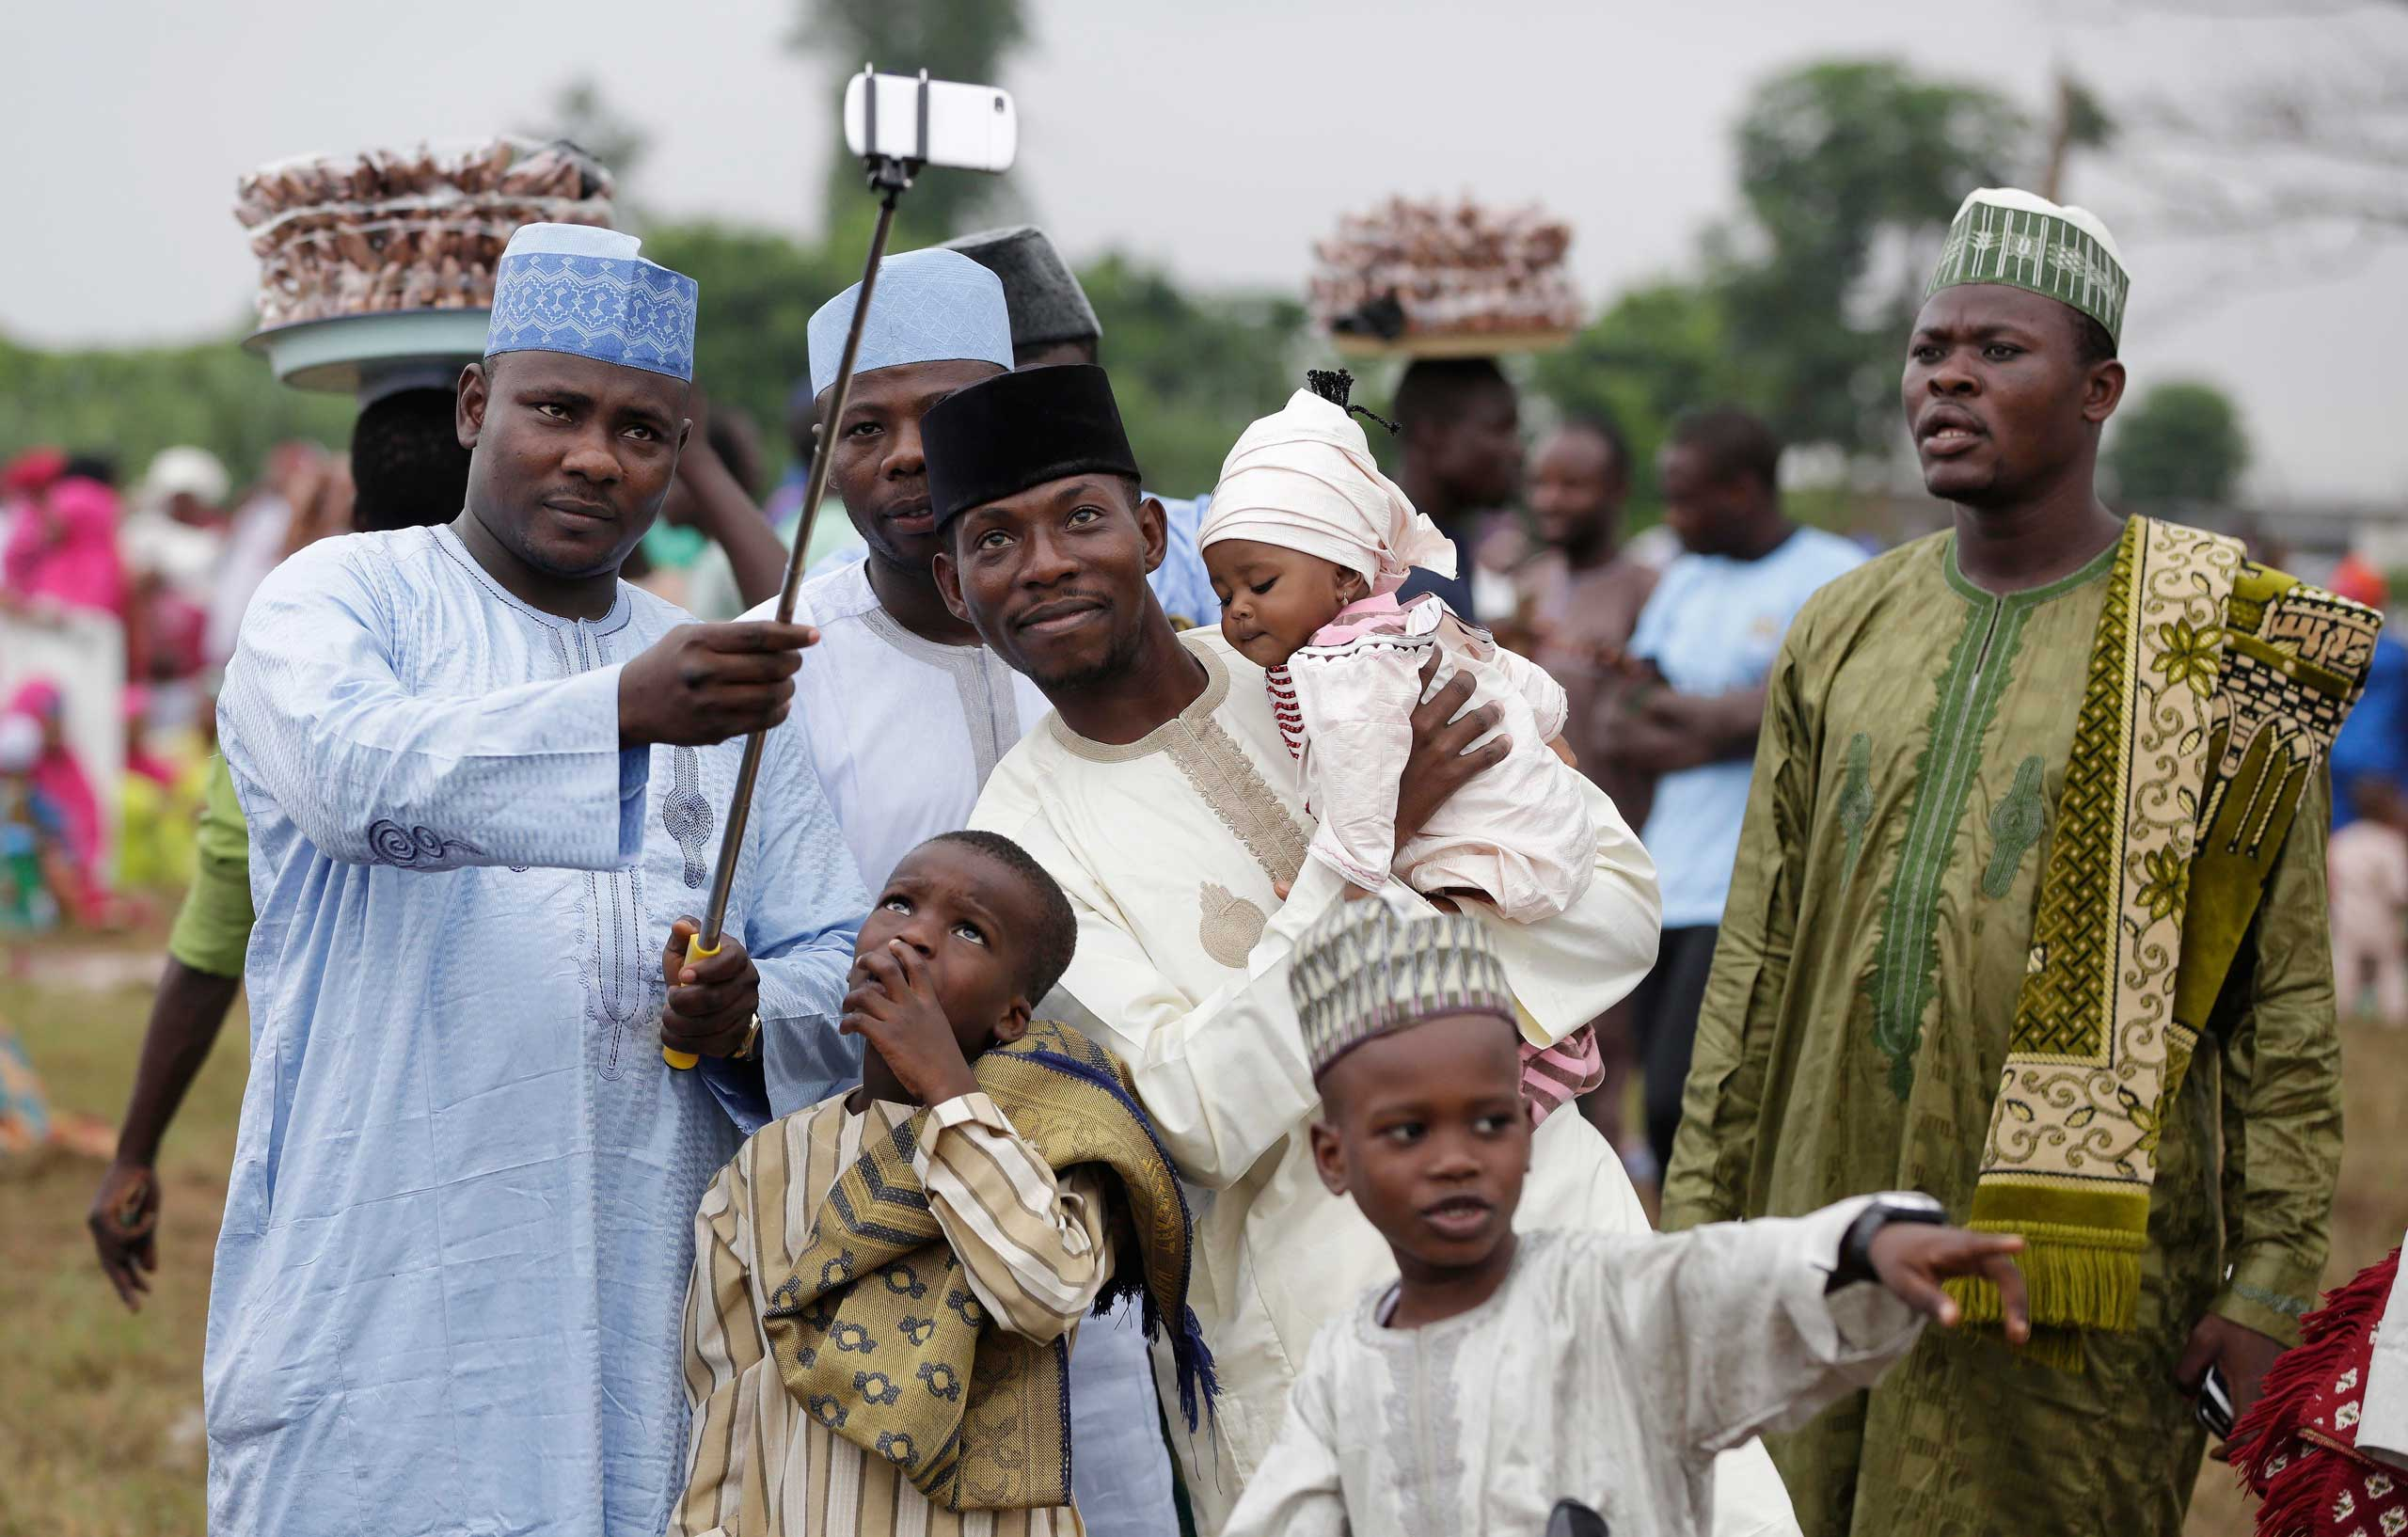 A Nigerian Muslim family takes a selfie portrait before Eid al-Fitr prayer, marking the end of the Muslim holy fasting month of Ramadan in Lagos, Nigeria, on  July 17, 2015.